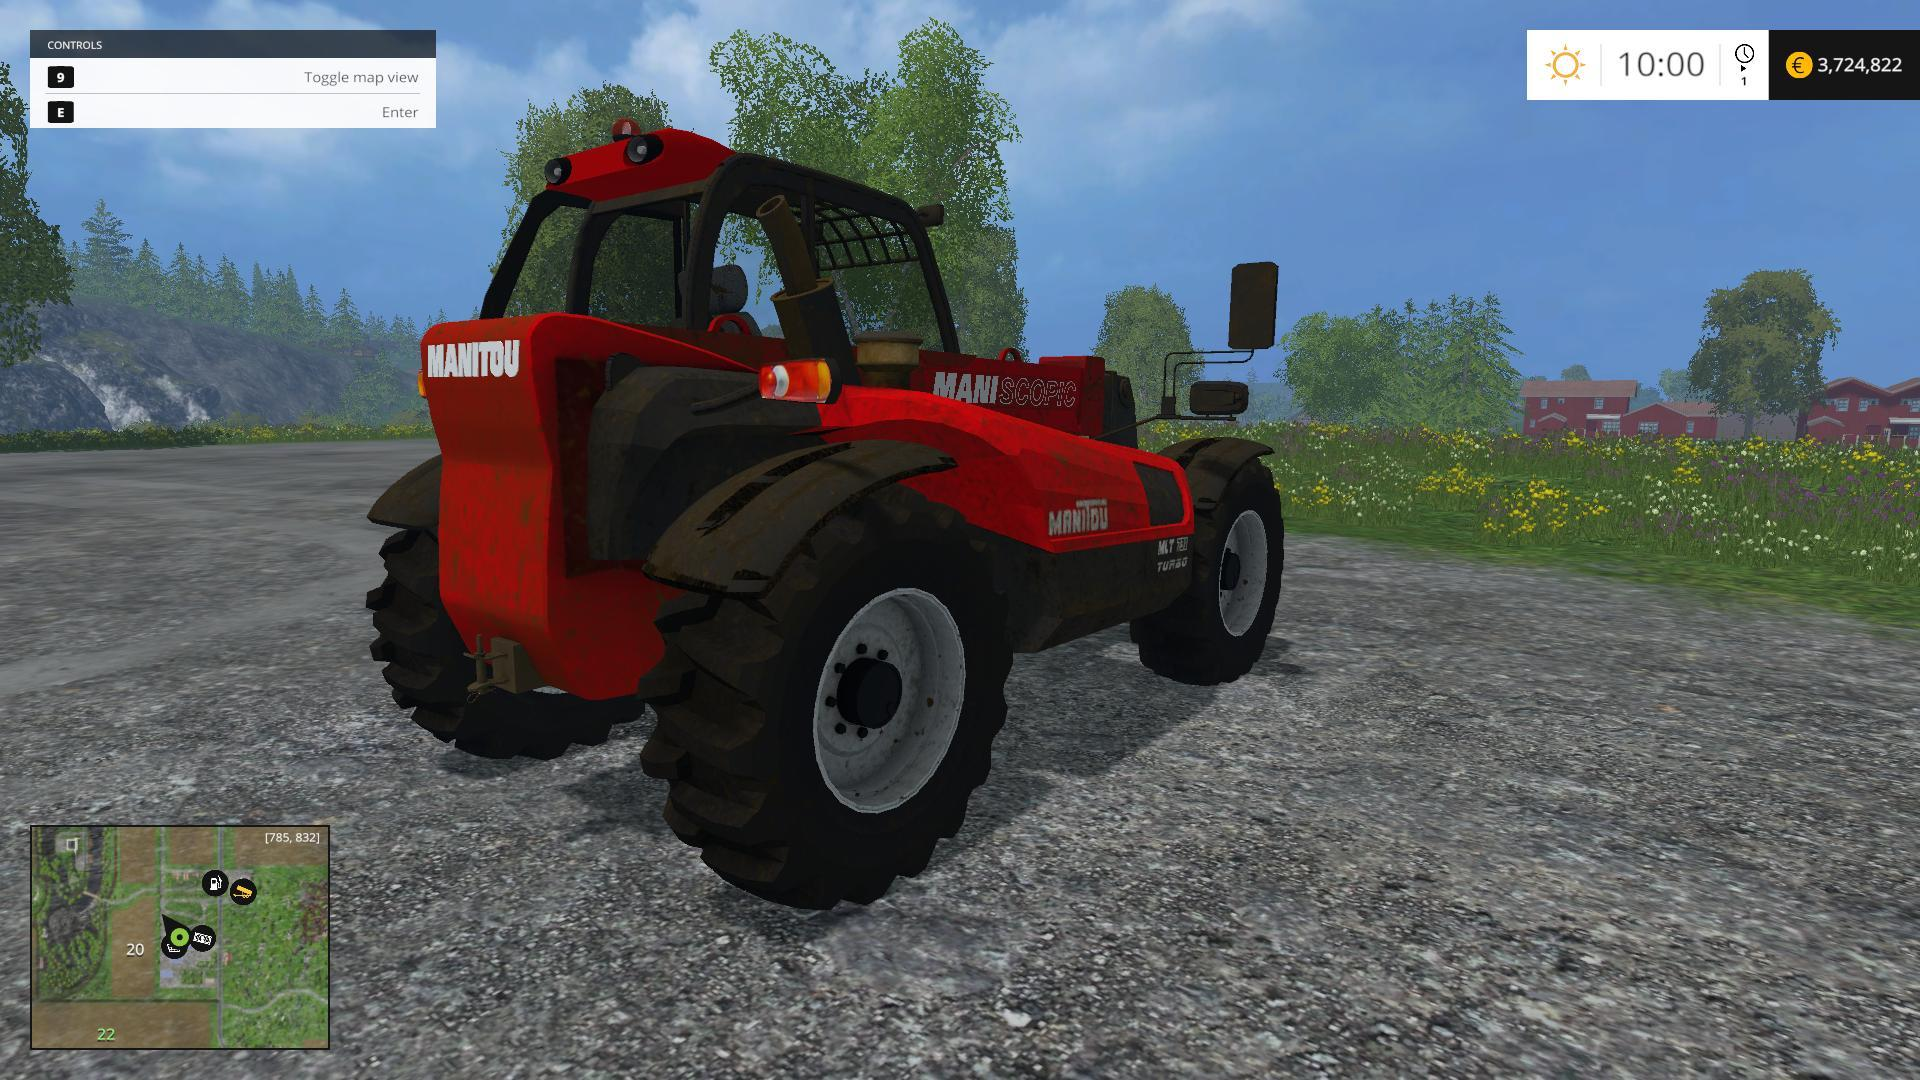 Manitou Mlt 731 manual